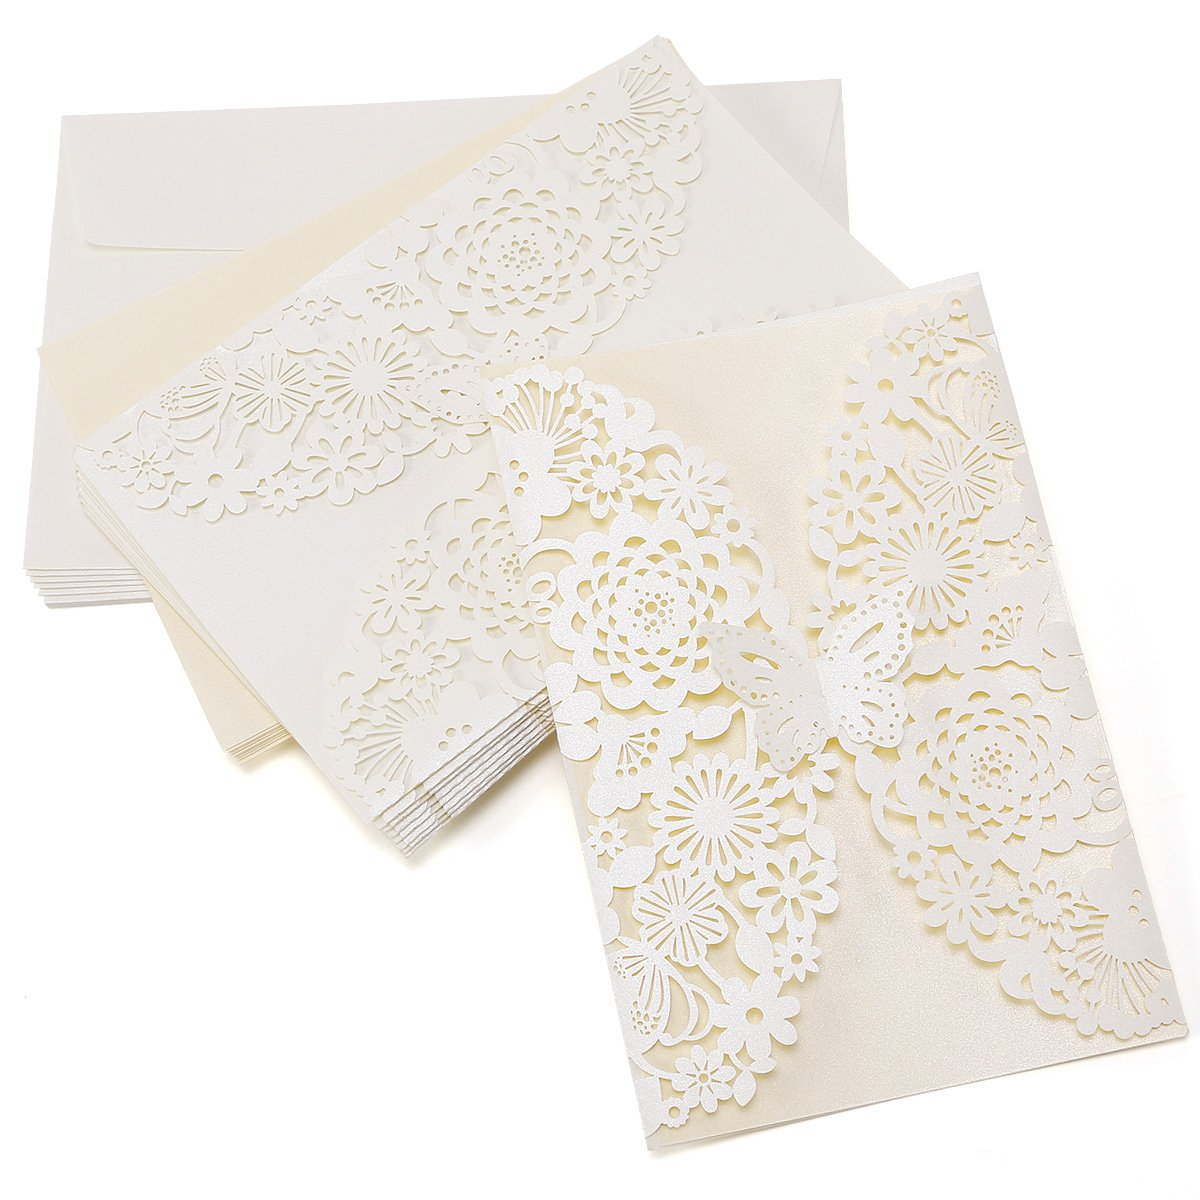 10pcs Laser Cut Personalised Wedding Day Evening Invitations Cards Envelopes SurePromise Limited